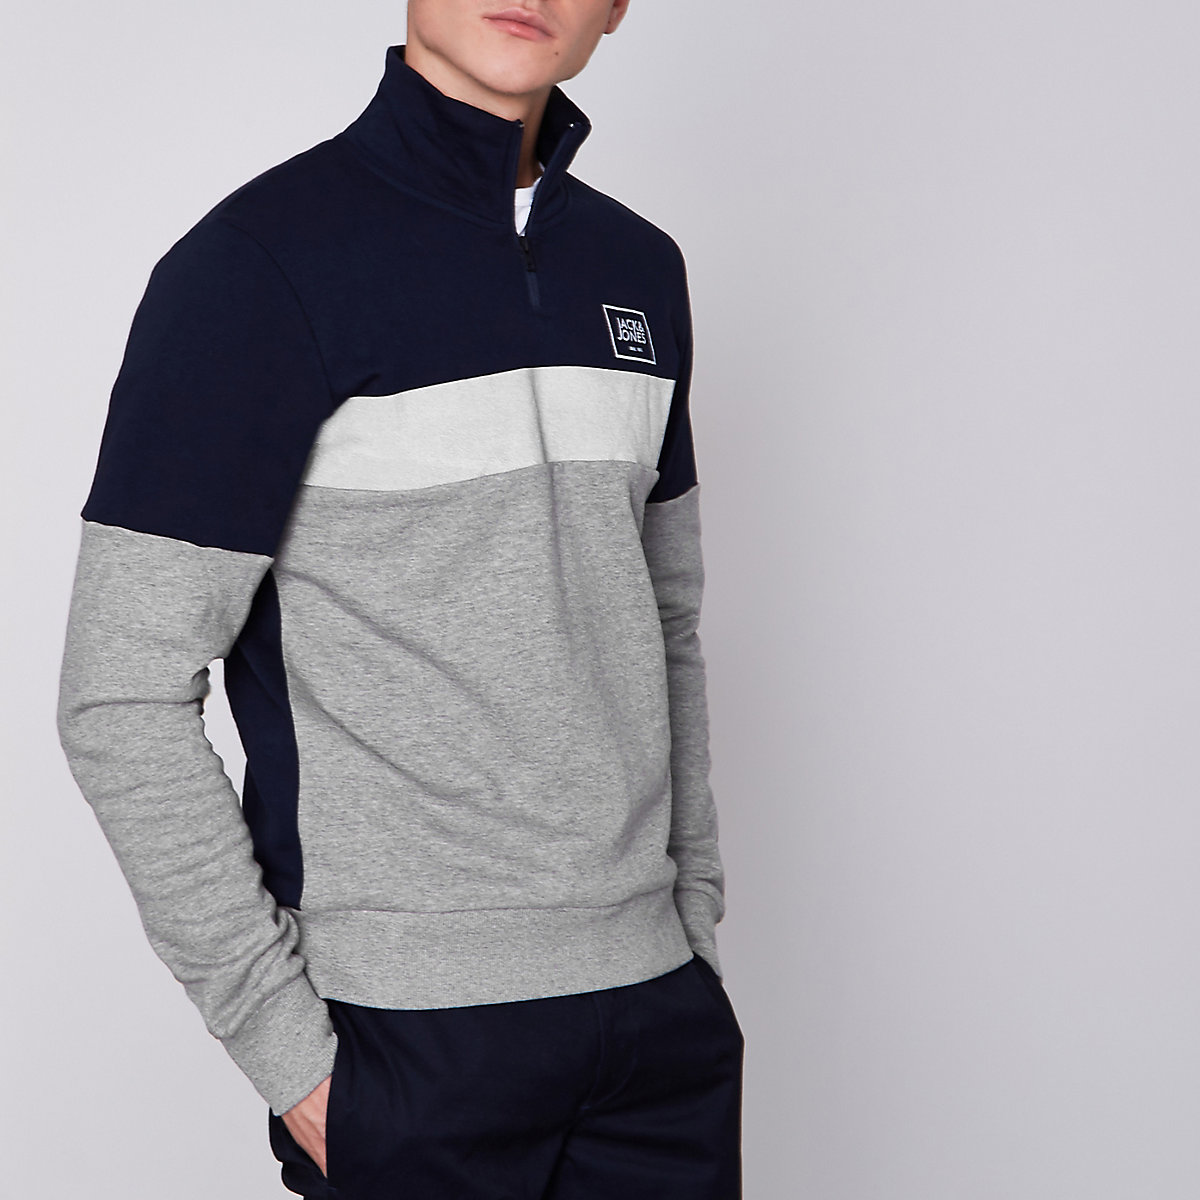 Jack & Jones Core grey zip neck sweatshirt